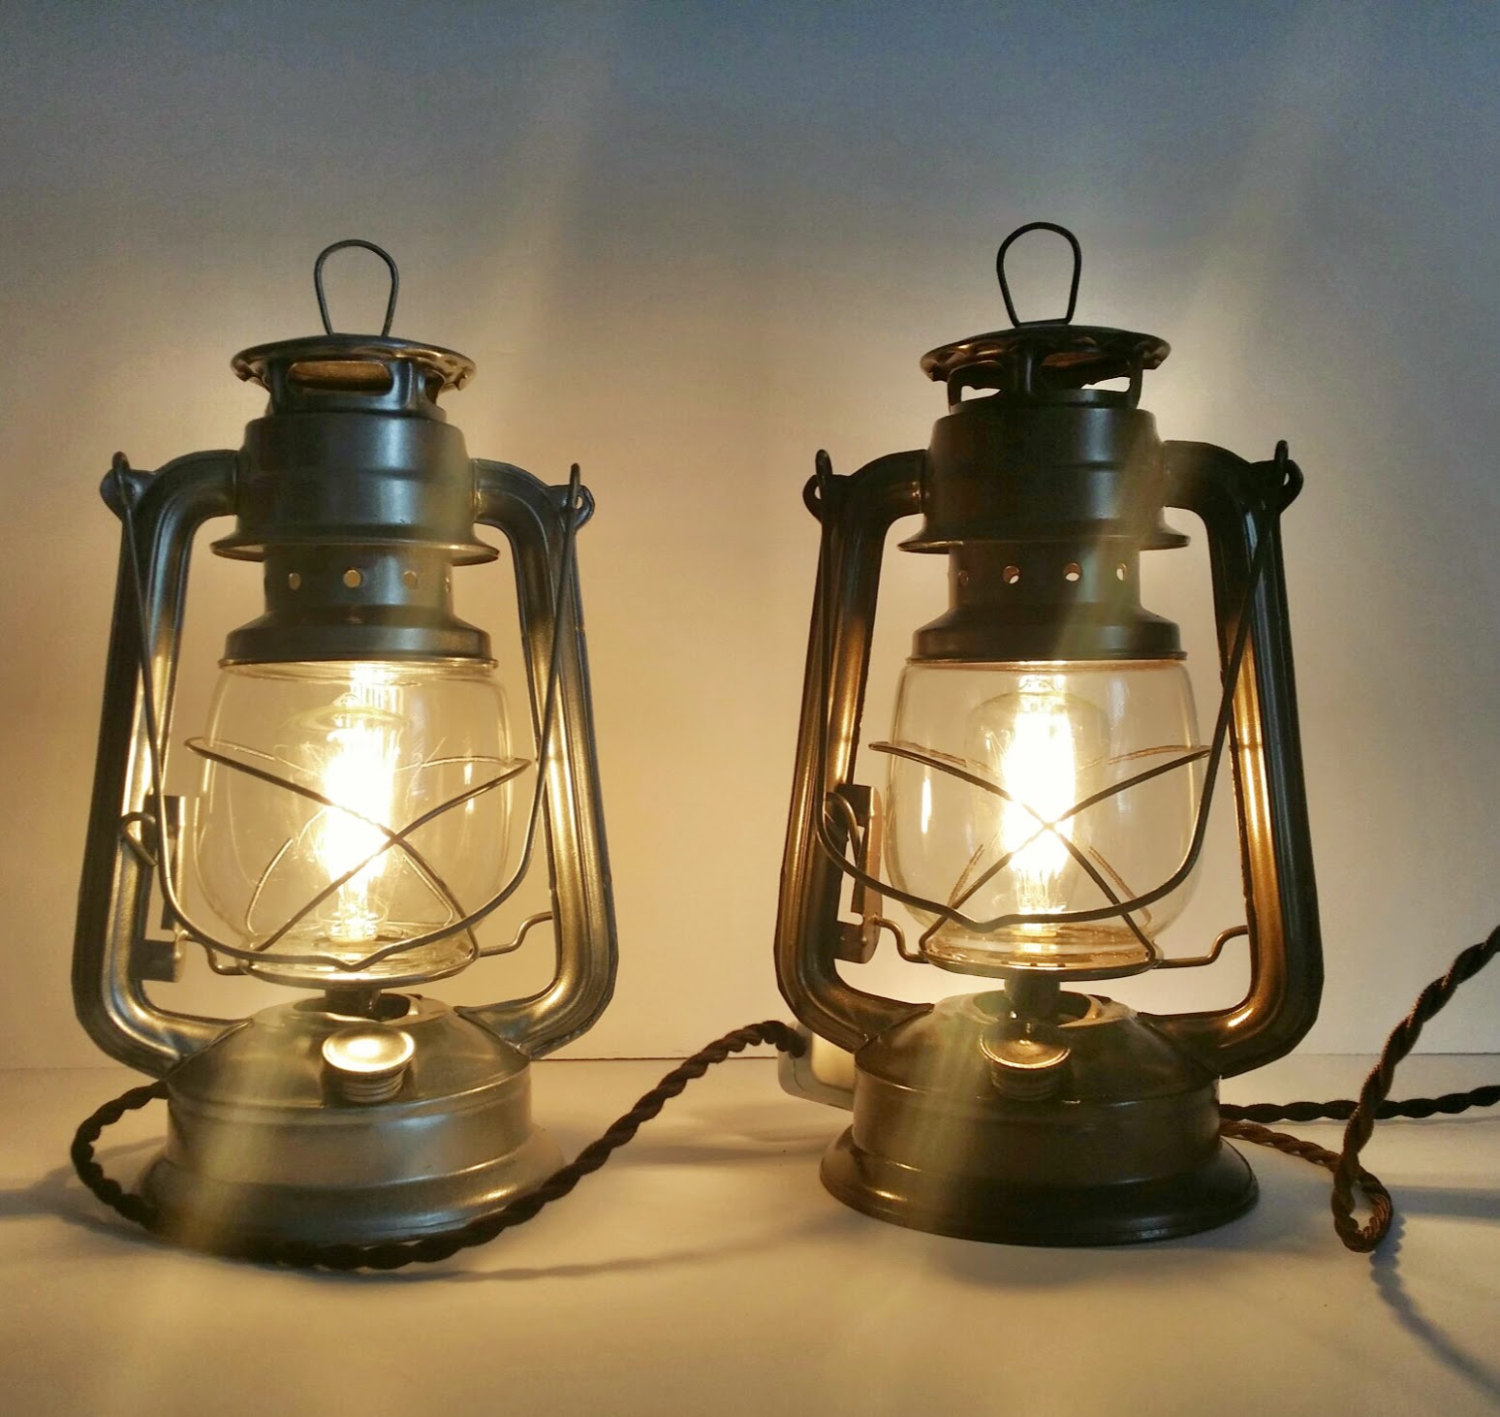 illuminate your rooms with the antique shades from rustic desk lamps - Rustic Table Lamps